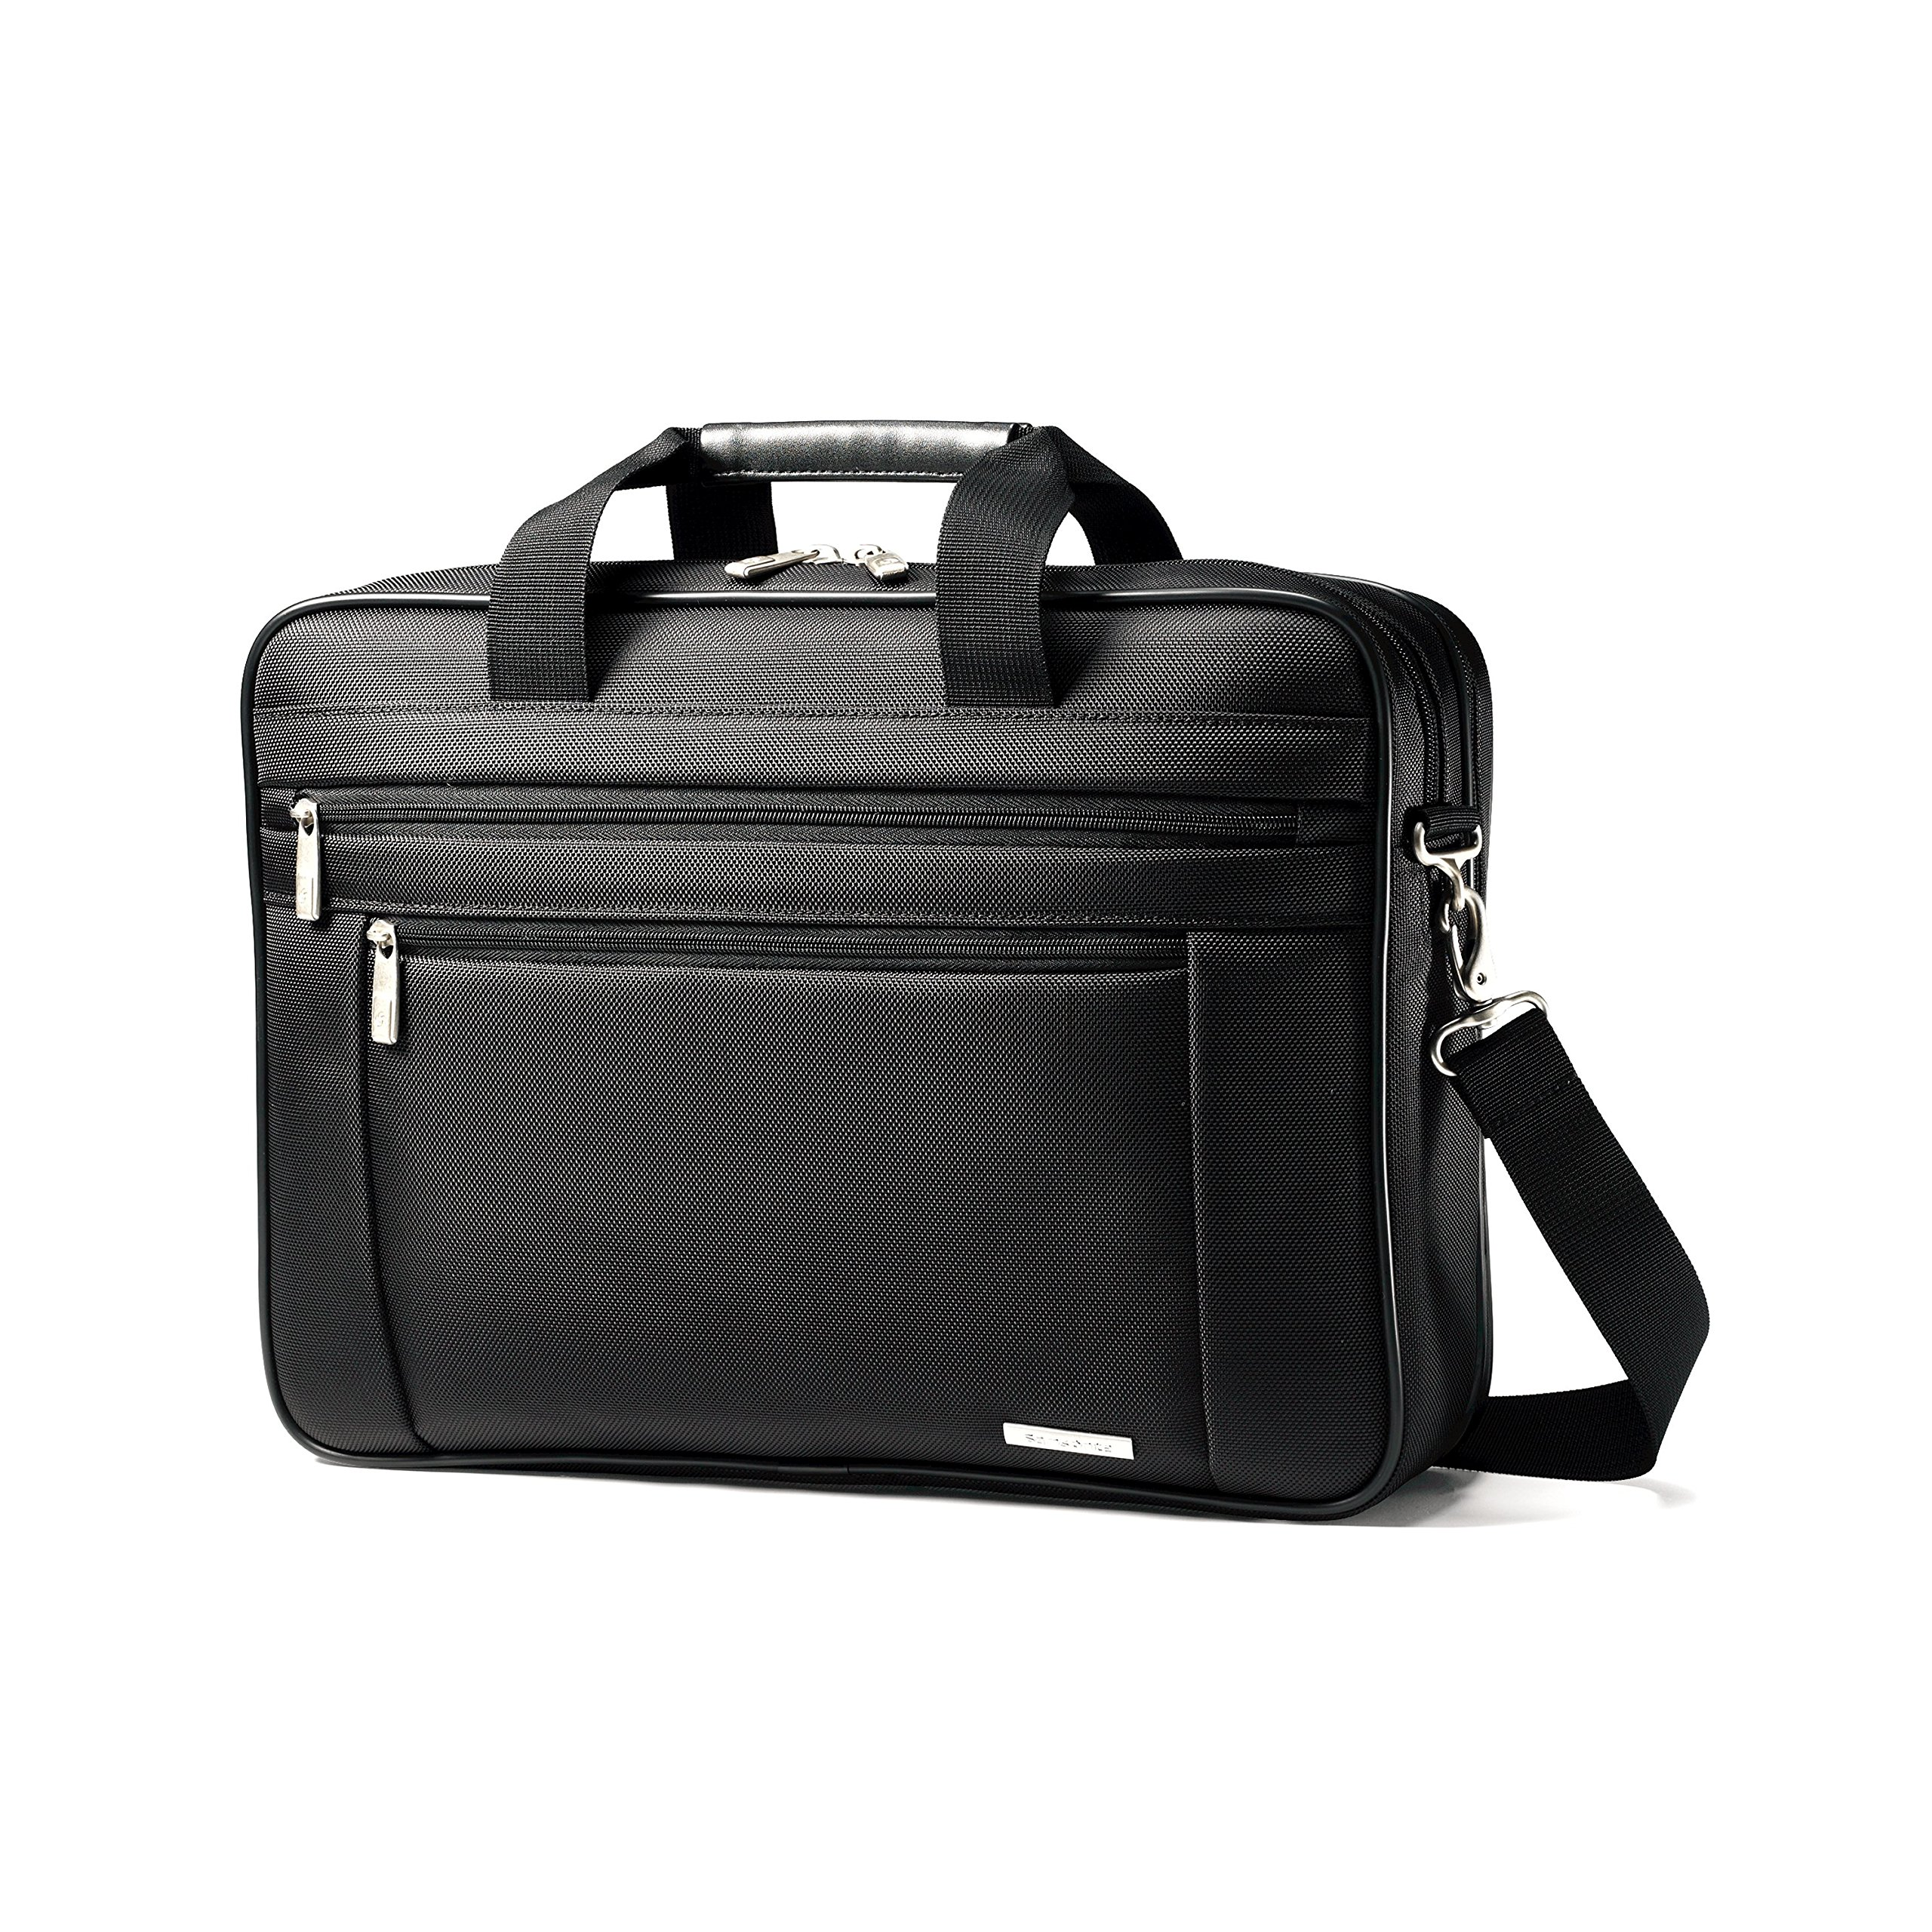 Samsonite Classic Business Perfect Fit Two Gusset Laptop Bag - 15.6'' Black